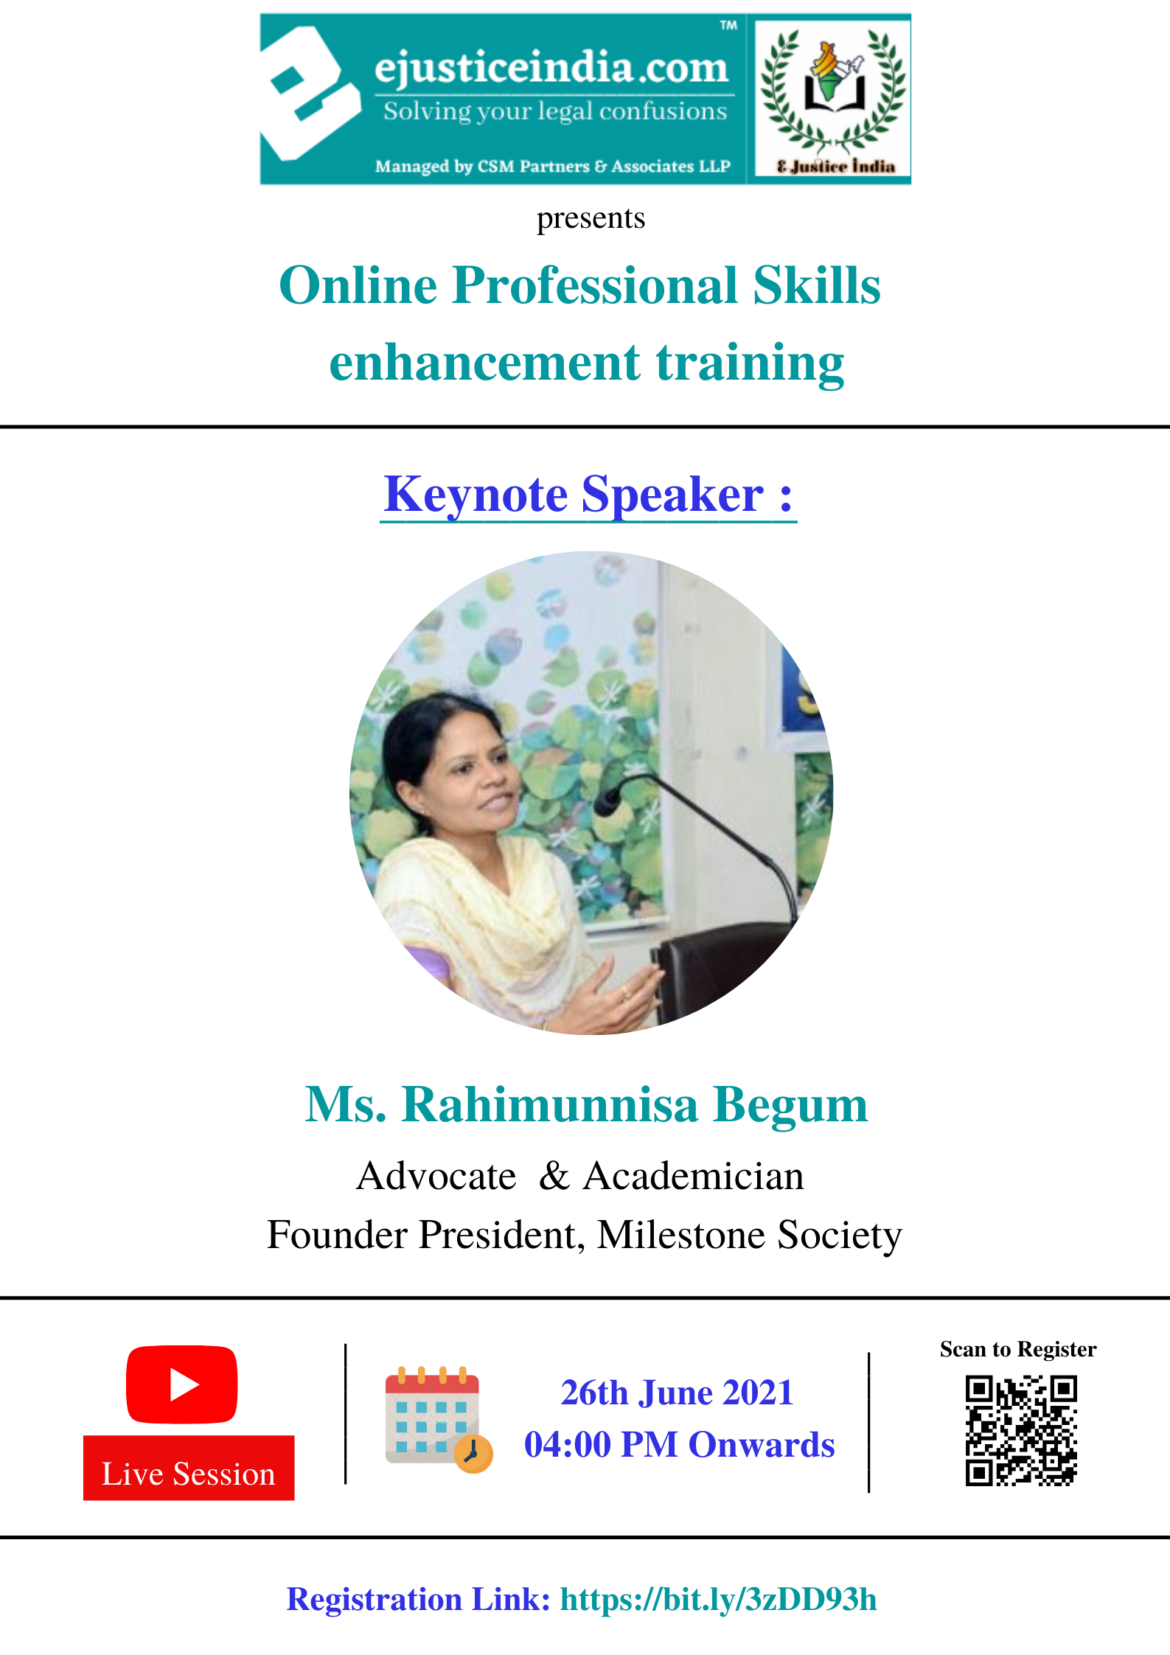 Free Online Professional skills enhancement training by E-Justice India: Register by 25 June, 2021